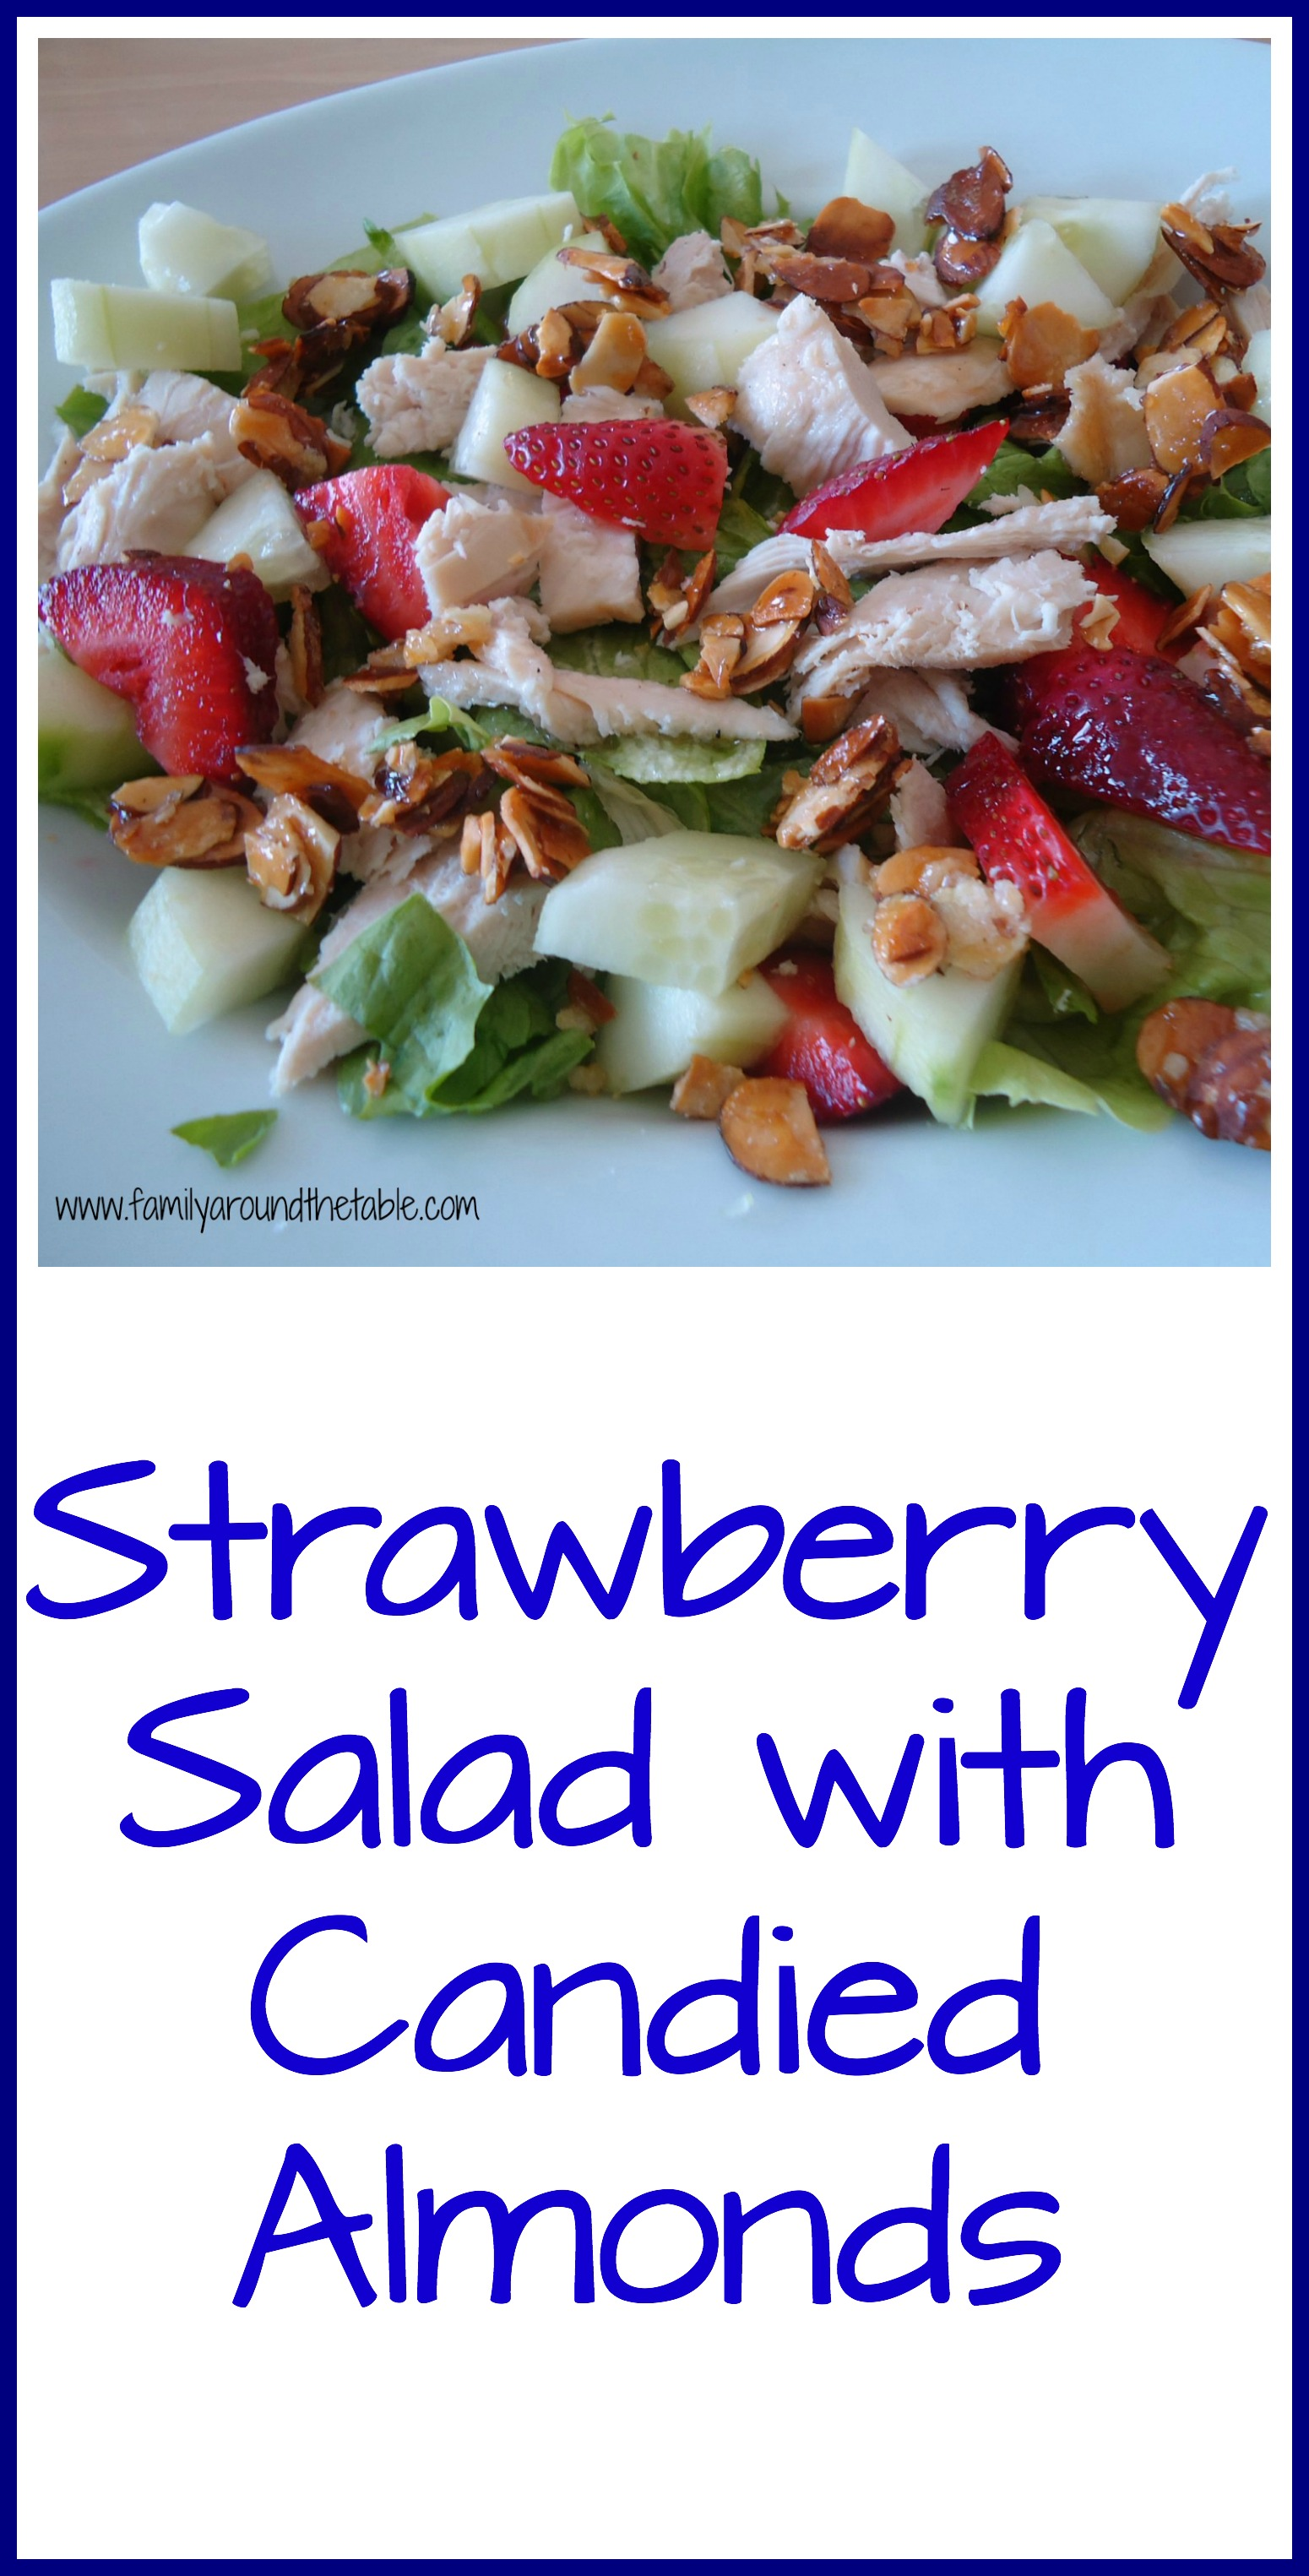 Strawberry Salad with candied almonds is a delicious salad. Make extra almonds!